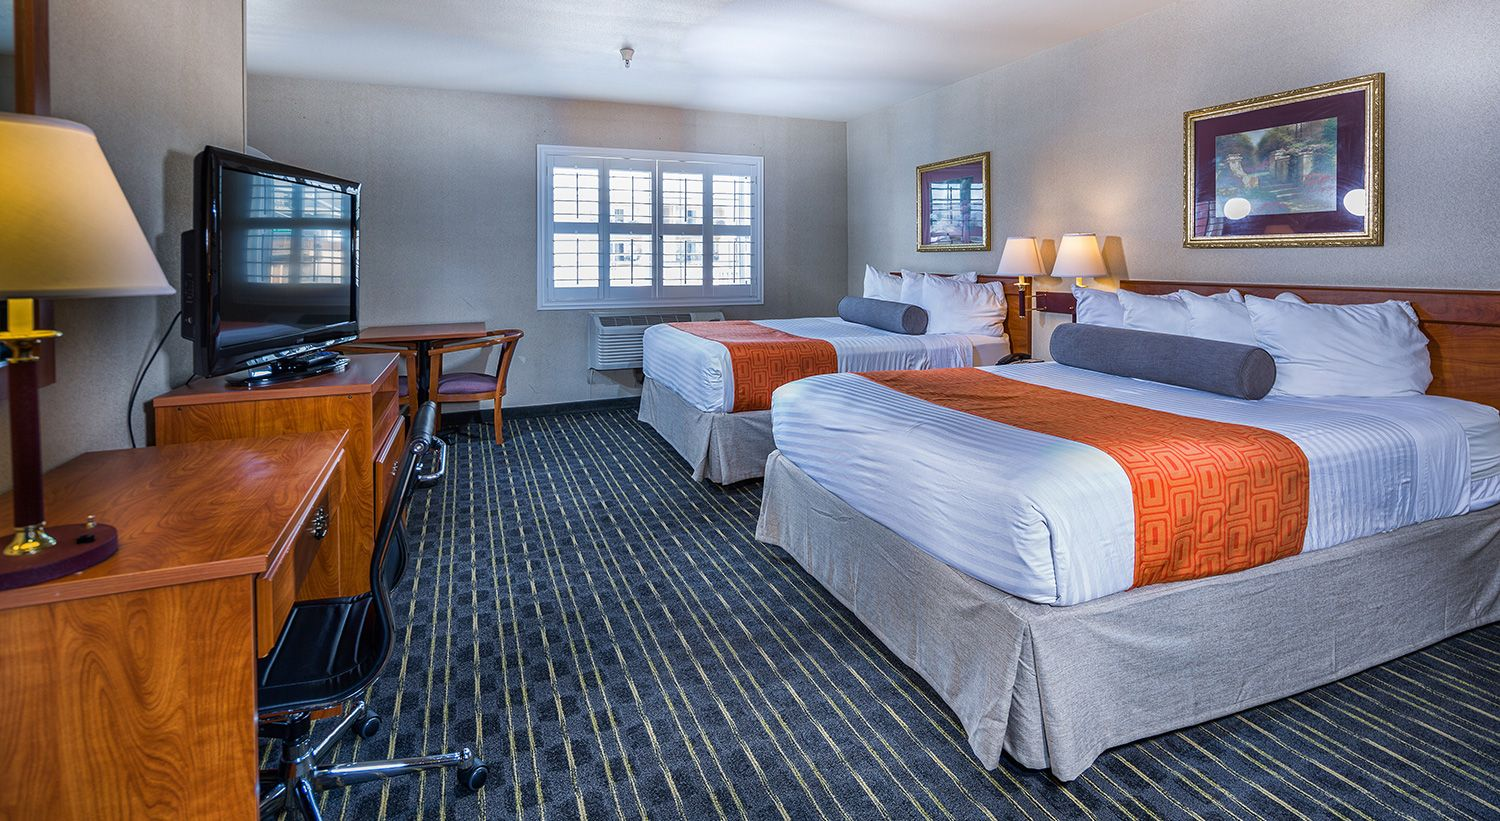 San Bruno Stay 2 Or More Nights And Get 15 Off Per Night By Booking On Our